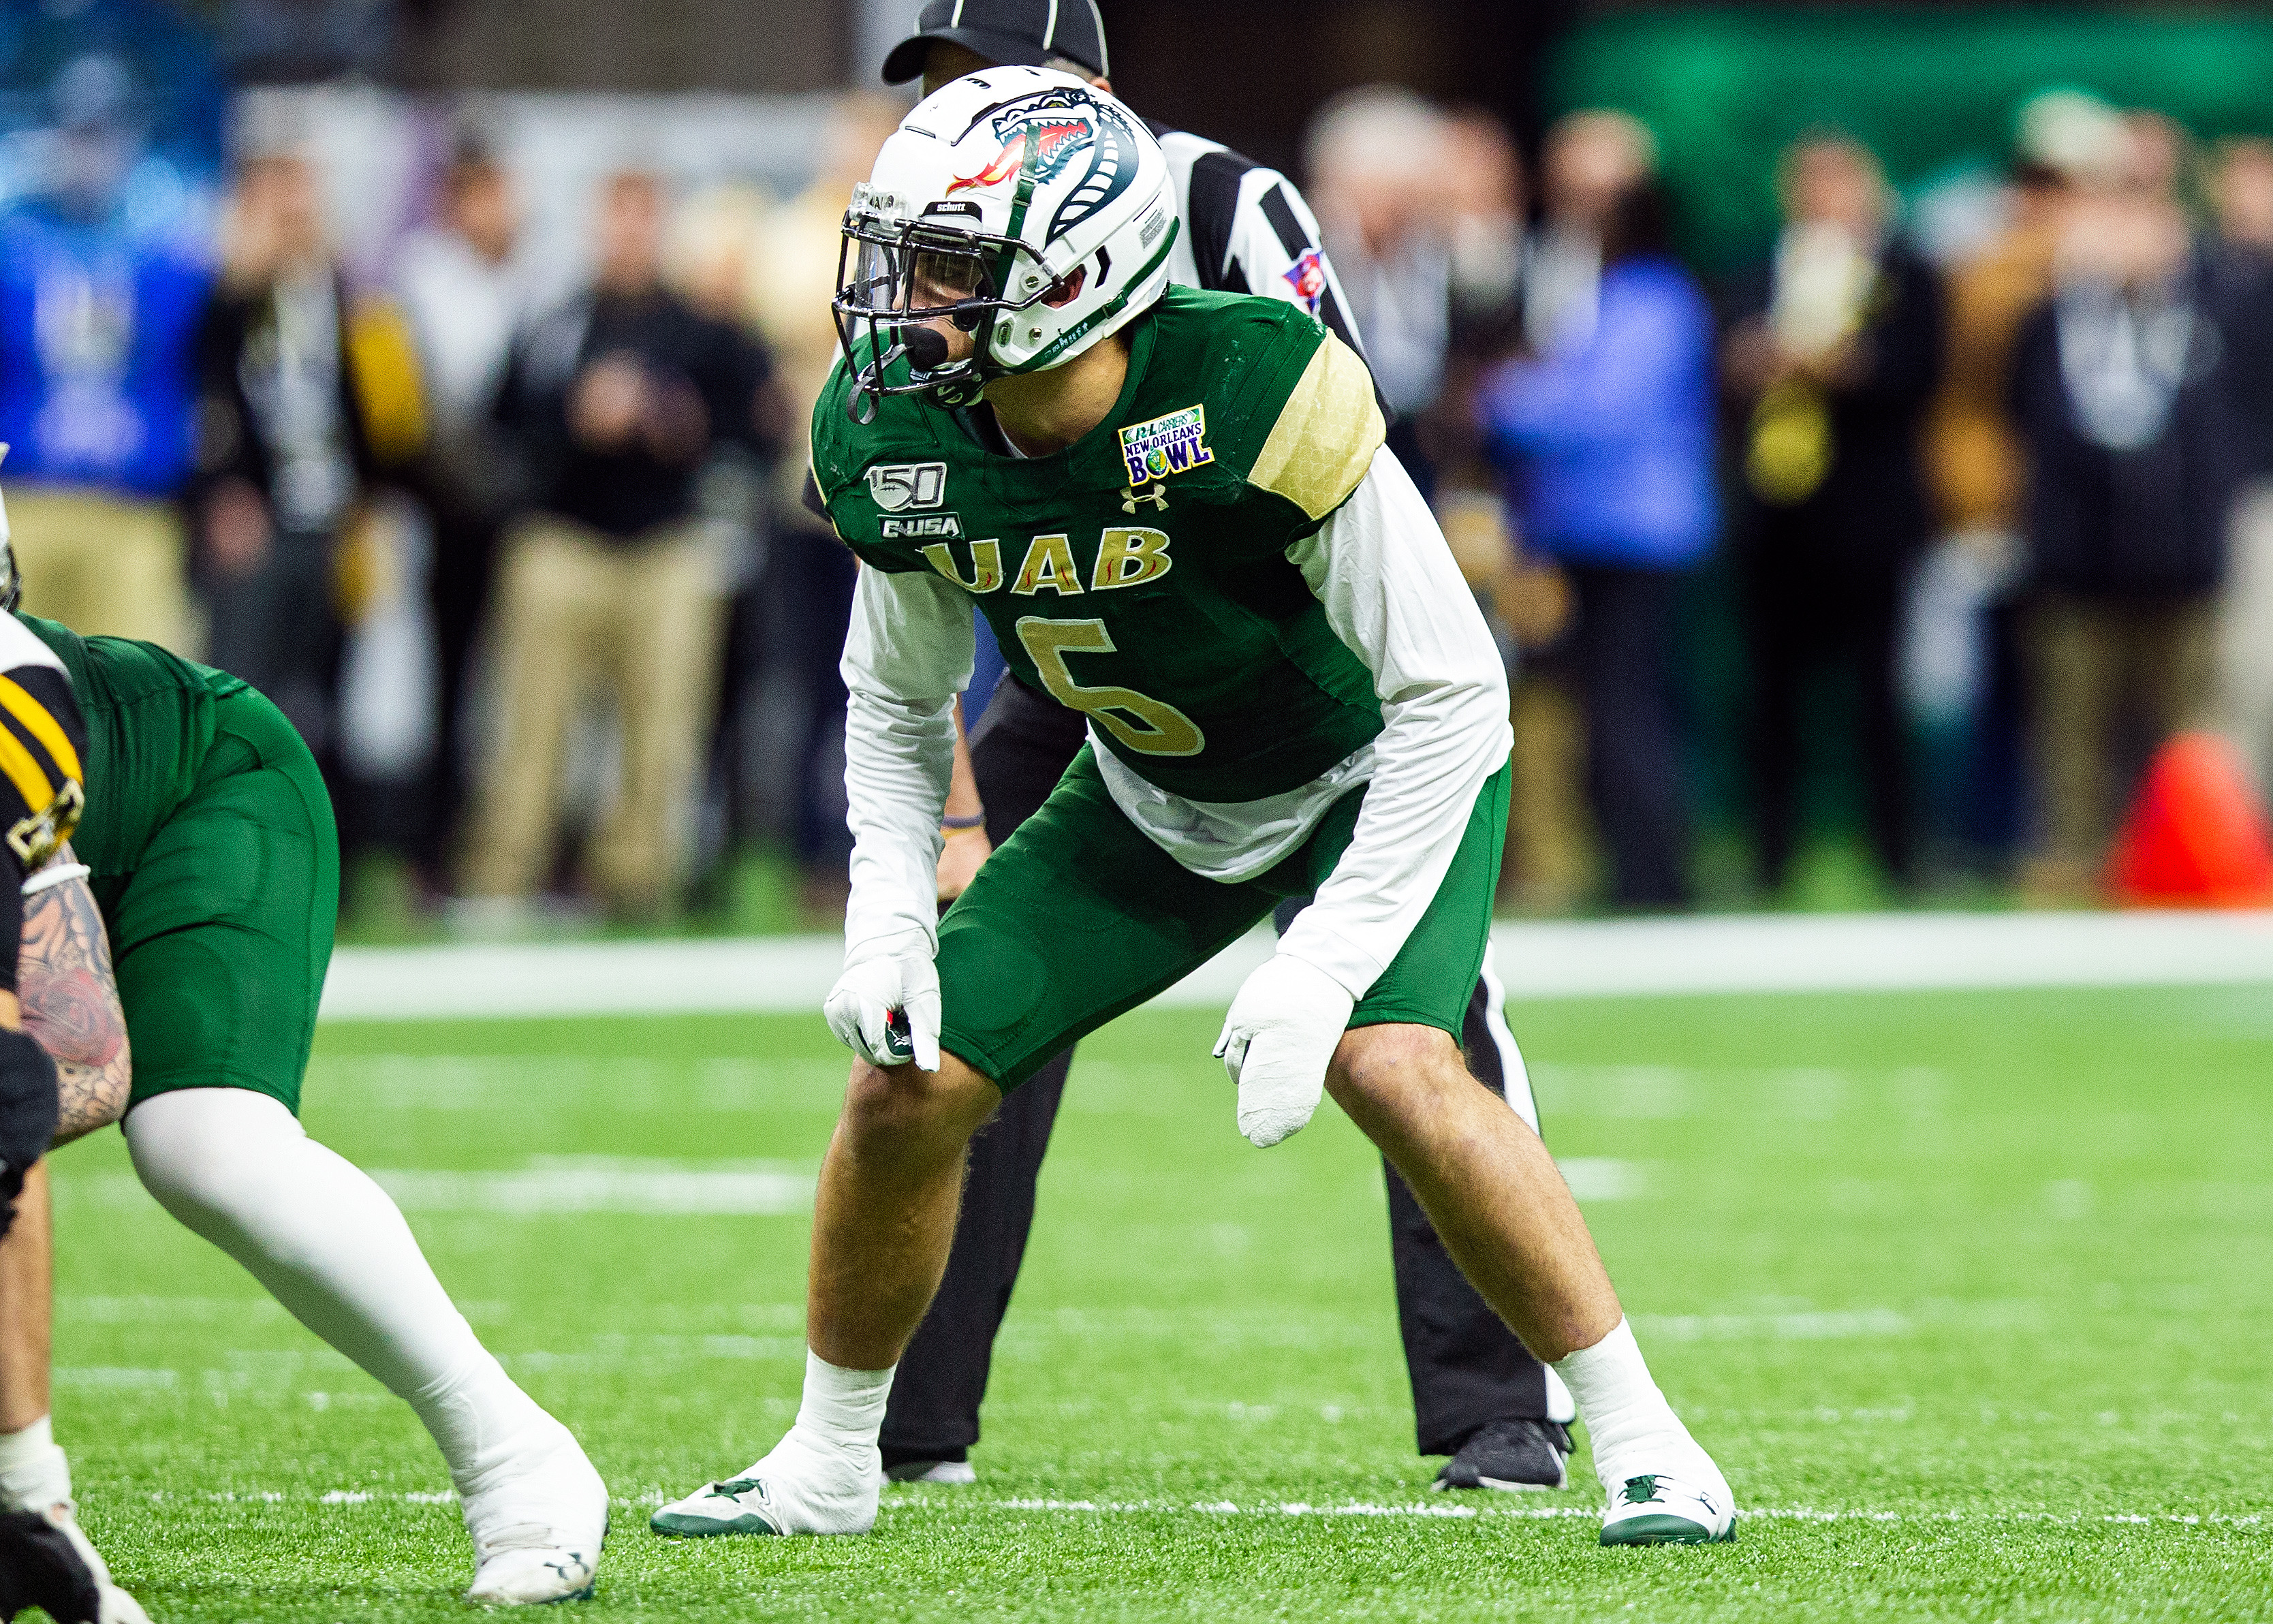 COLLEGE FOOTBALL: DEC 15 New Orleans Bowl - Appalachian State v UAB